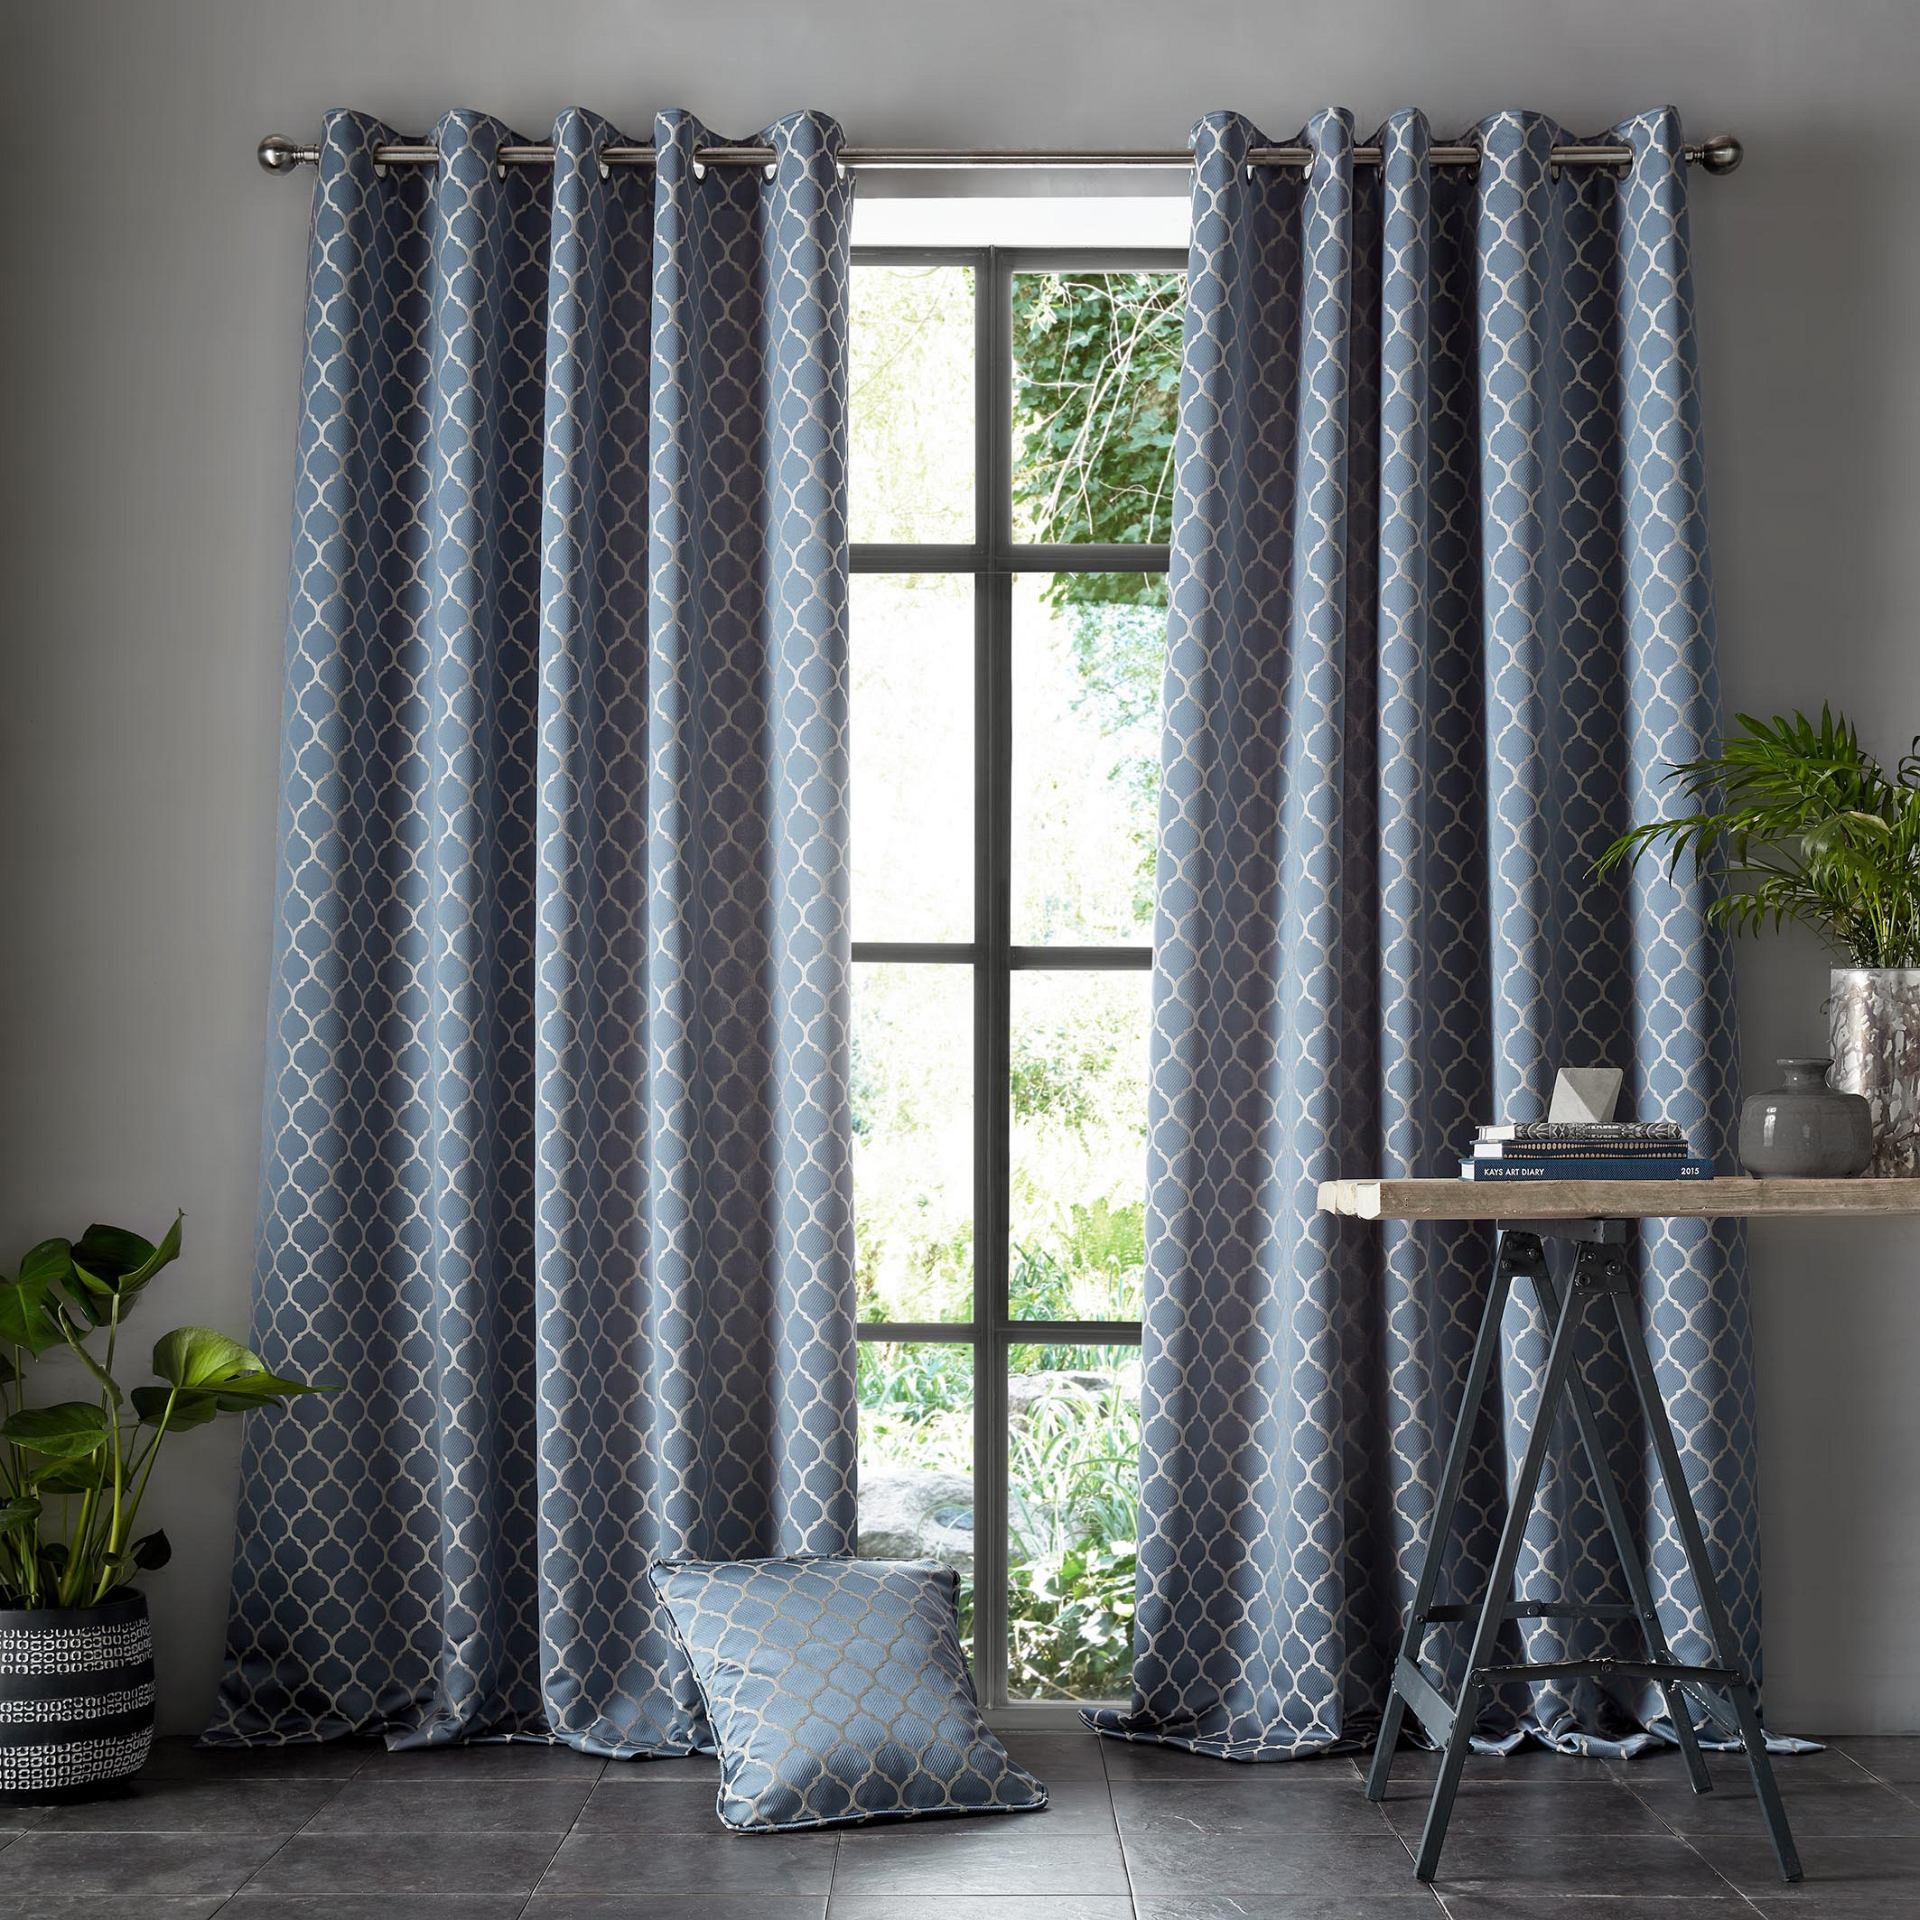 Village-fabrics-Curtains-Aldbury-Danube-FINAL